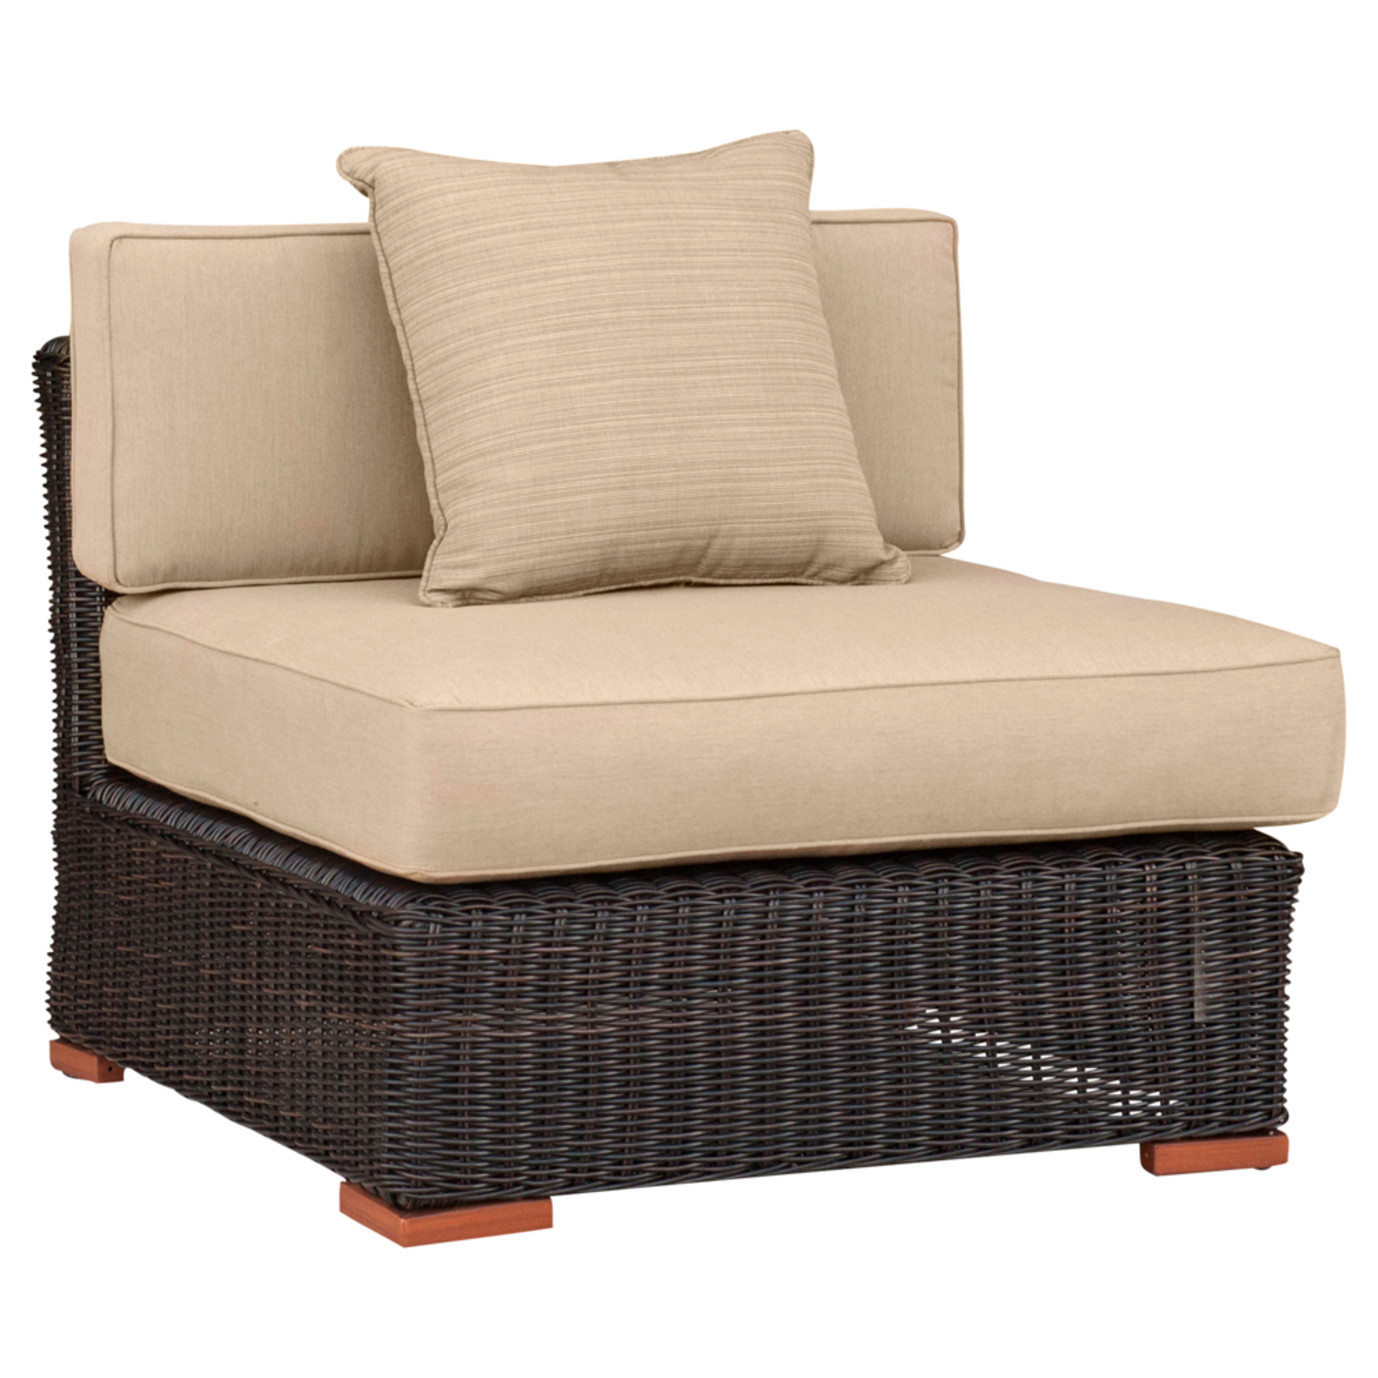 Resort Armless Chair and Large Ottoman Set - Heather Beige